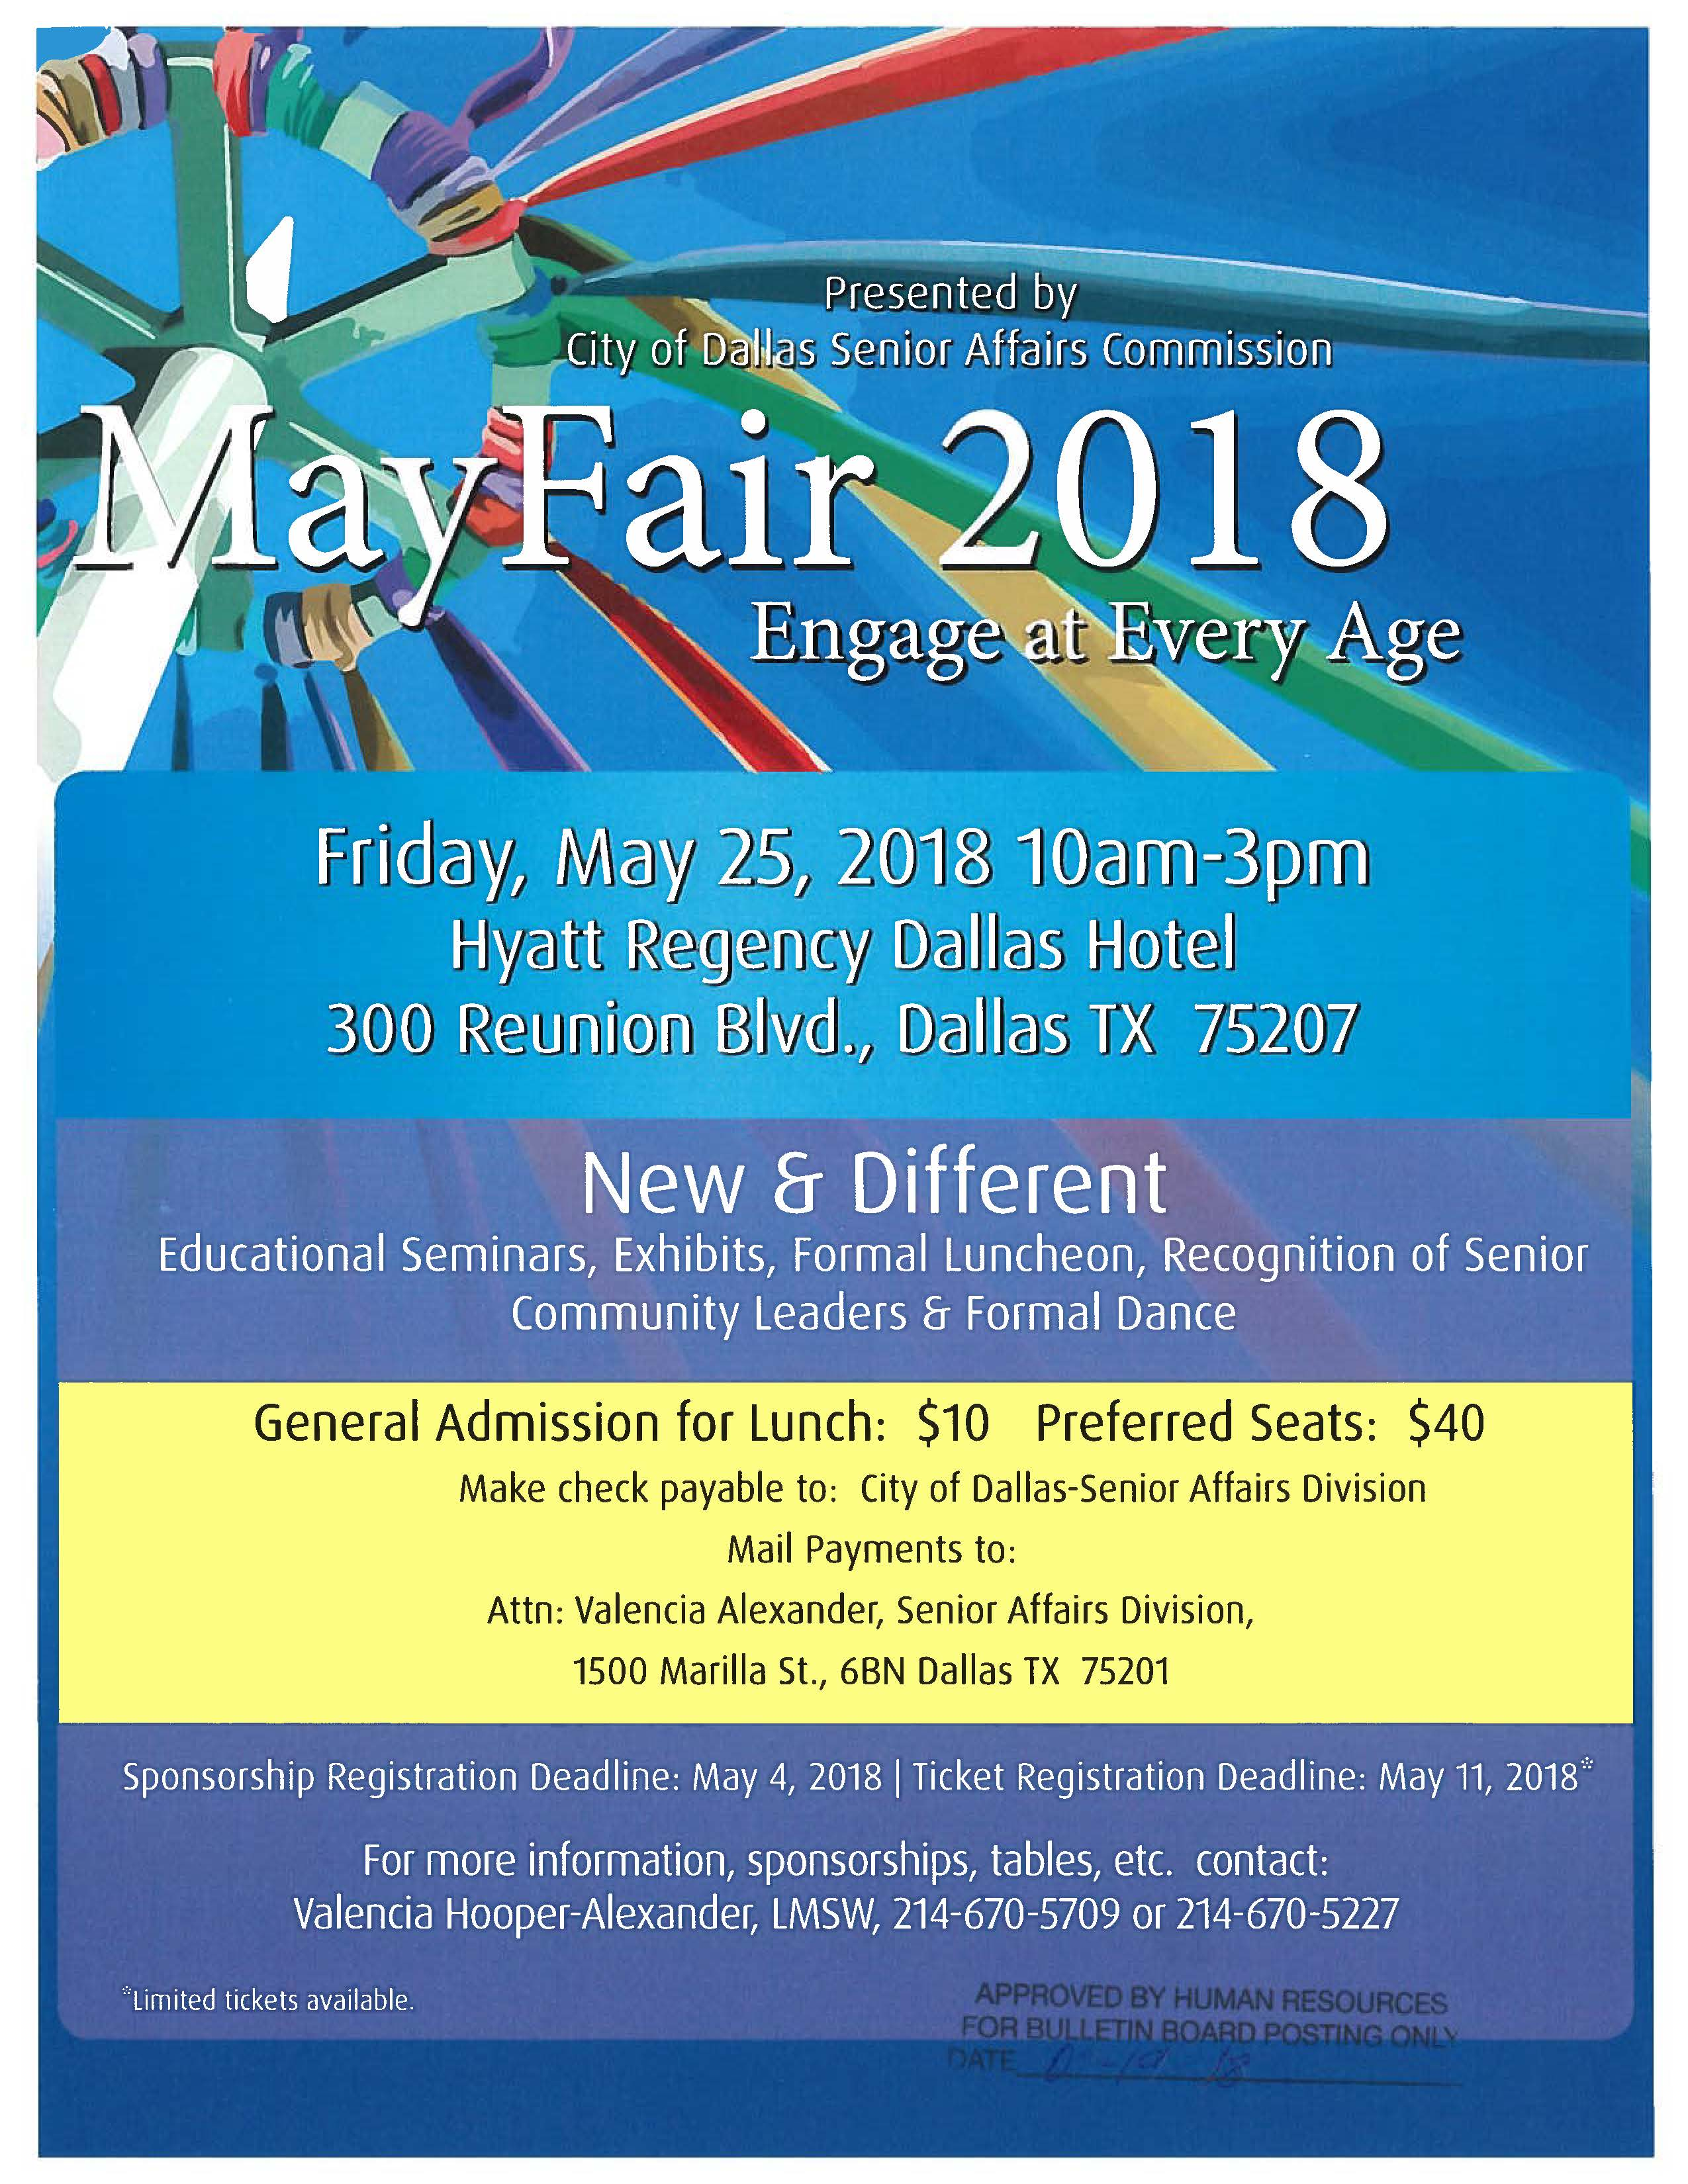 MayFair 2018 Flyer.jpg